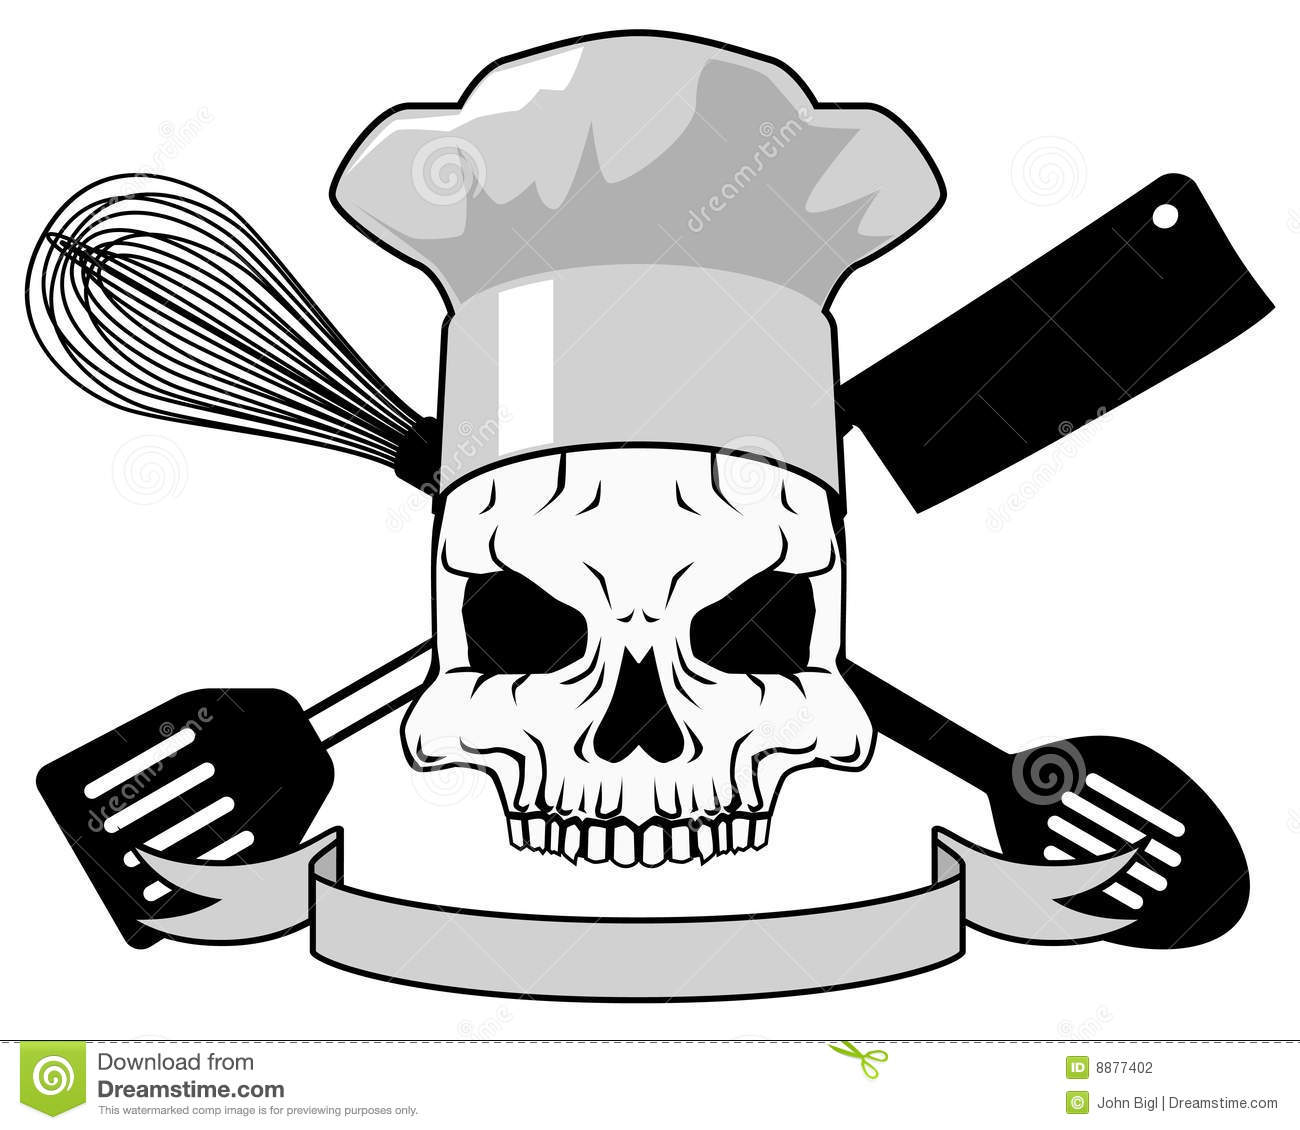 death chef tattoo design stock photography image 8877402. Black Bedroom Furniture Sets. Home Design Ideas